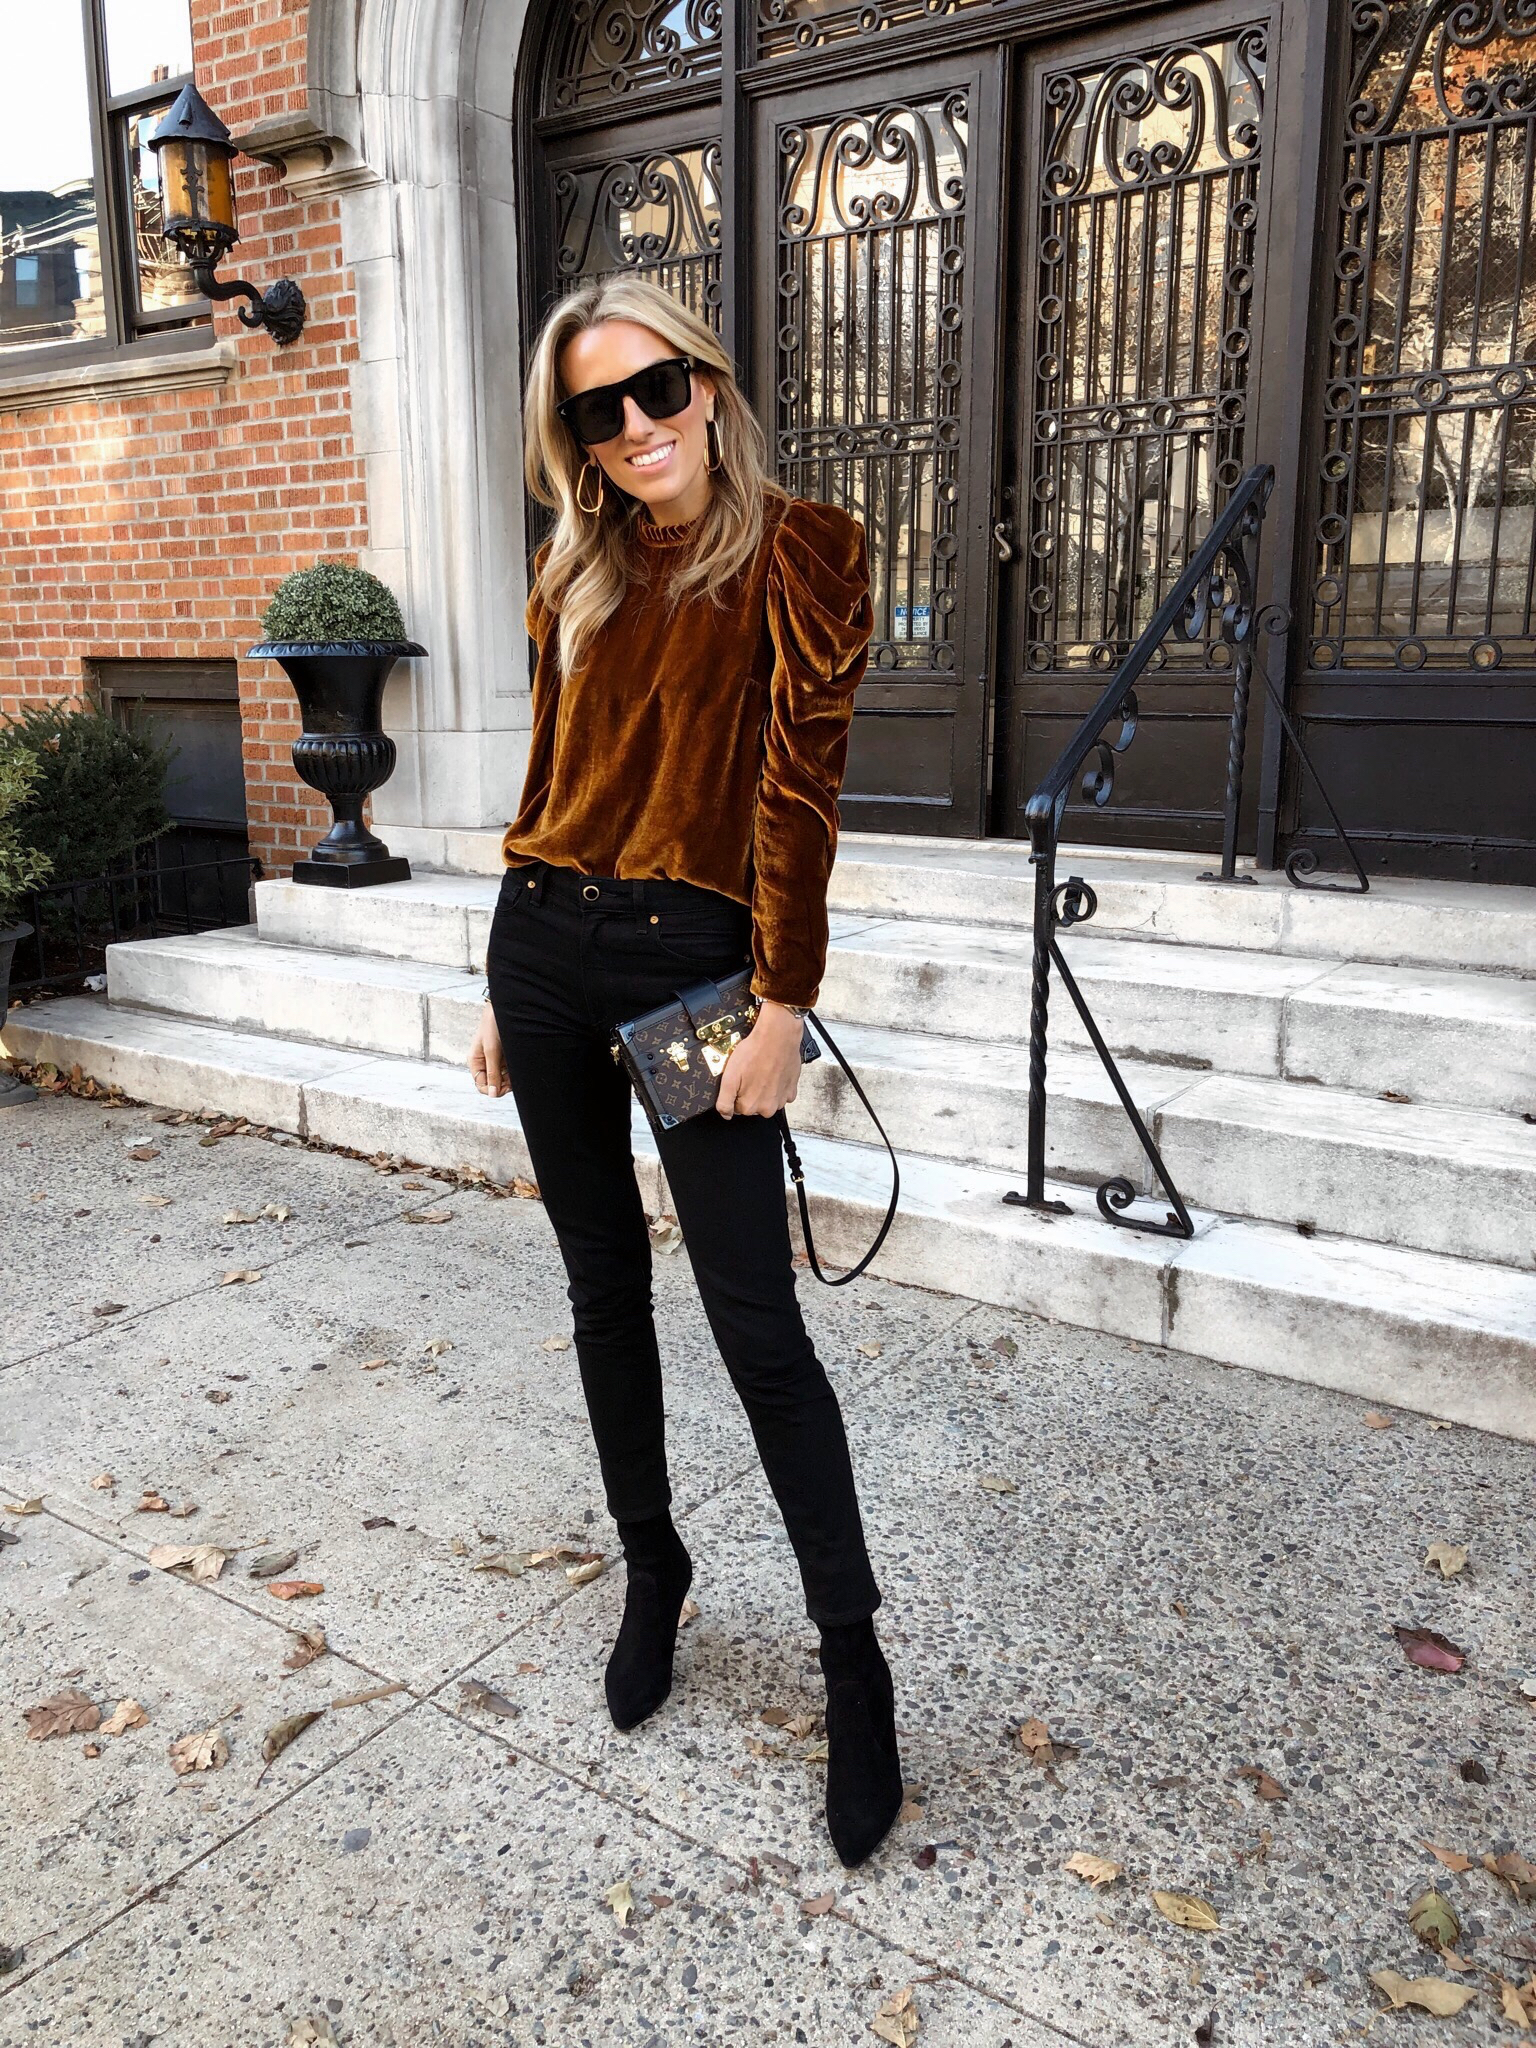 Velvet top, Black jeans, Louis Vuitton, Givenchy, Stuart Weitzman boots